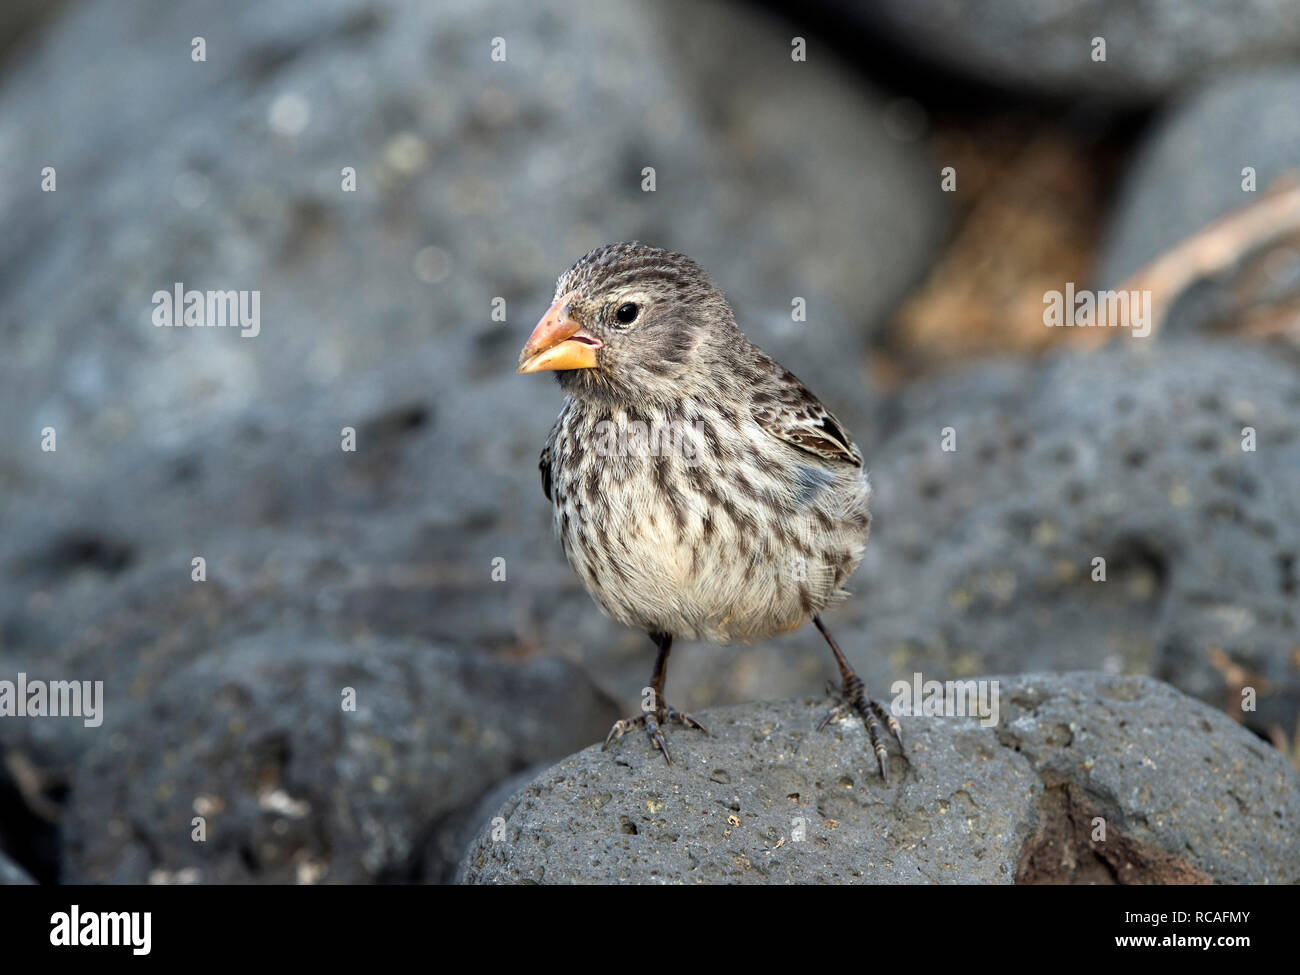 Small Ground Finch (Geospiza fuliginosa), Floreana  Island, Galapagos Islands, Ecuador - Stock Image